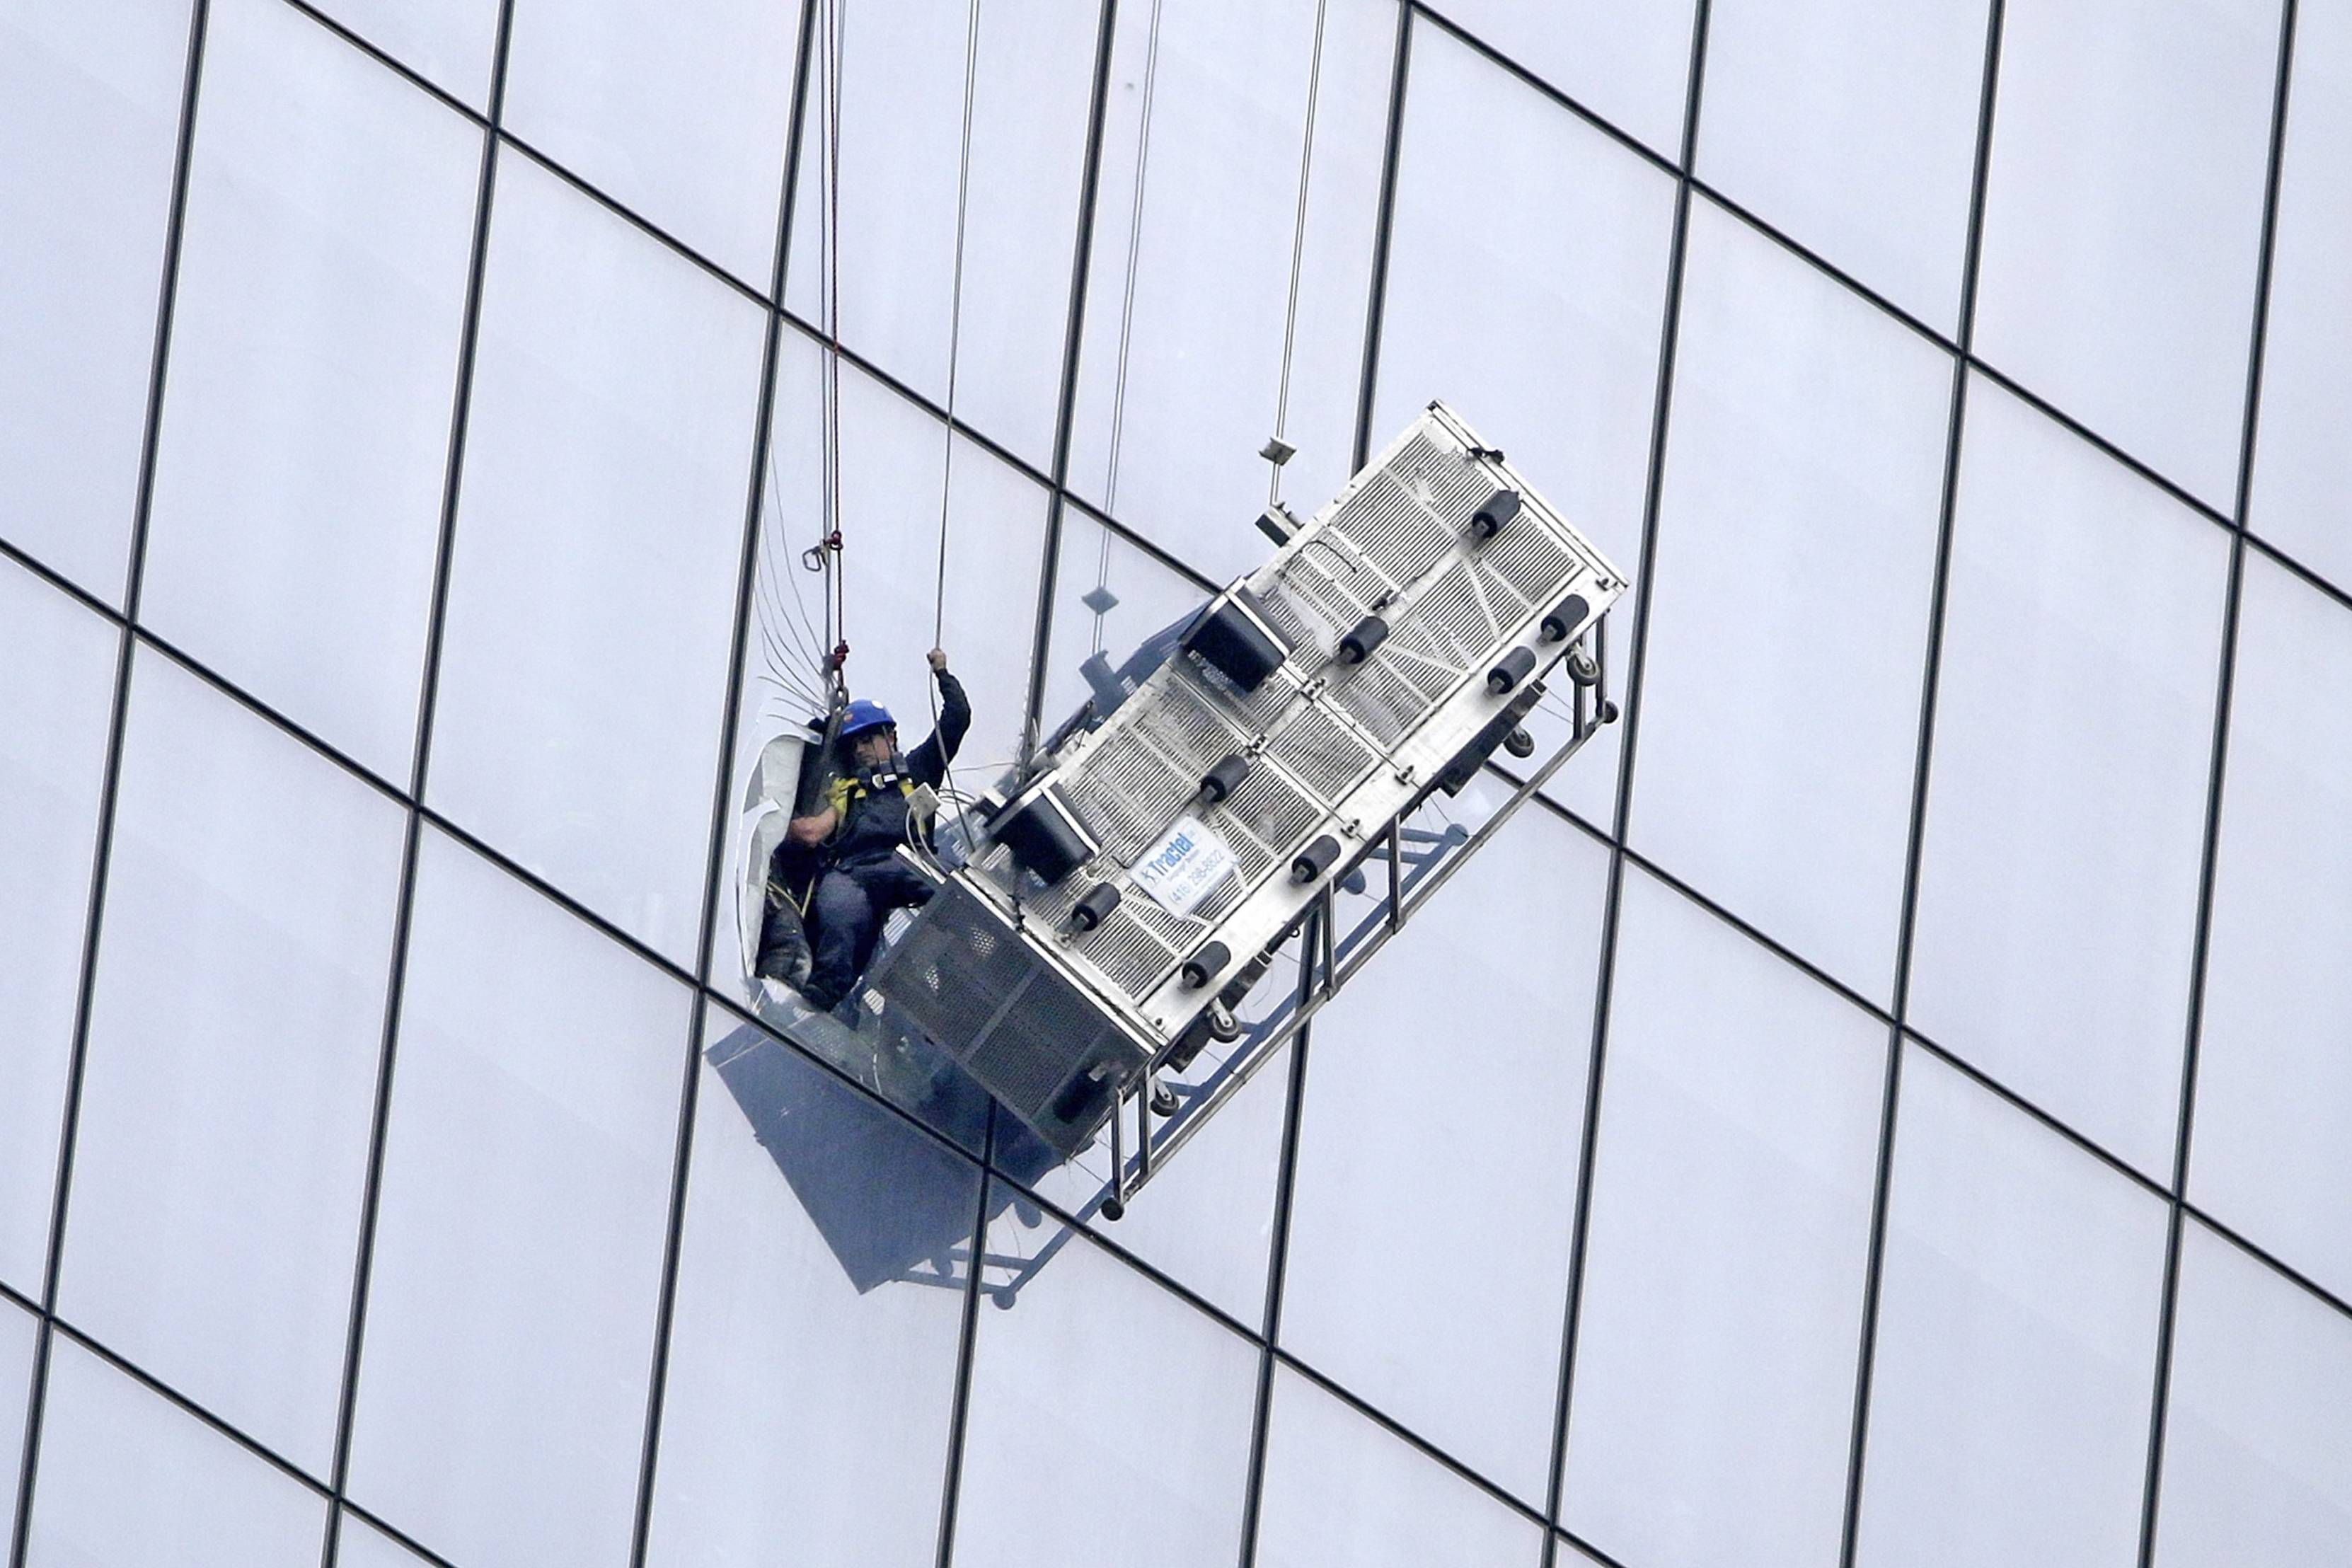 A window washer is seen being rescued by NYPD and NYFD  after his carriage came dislodged from his cables along side the One World Trade Center in New YorkCity on Nov. 12, 2014.